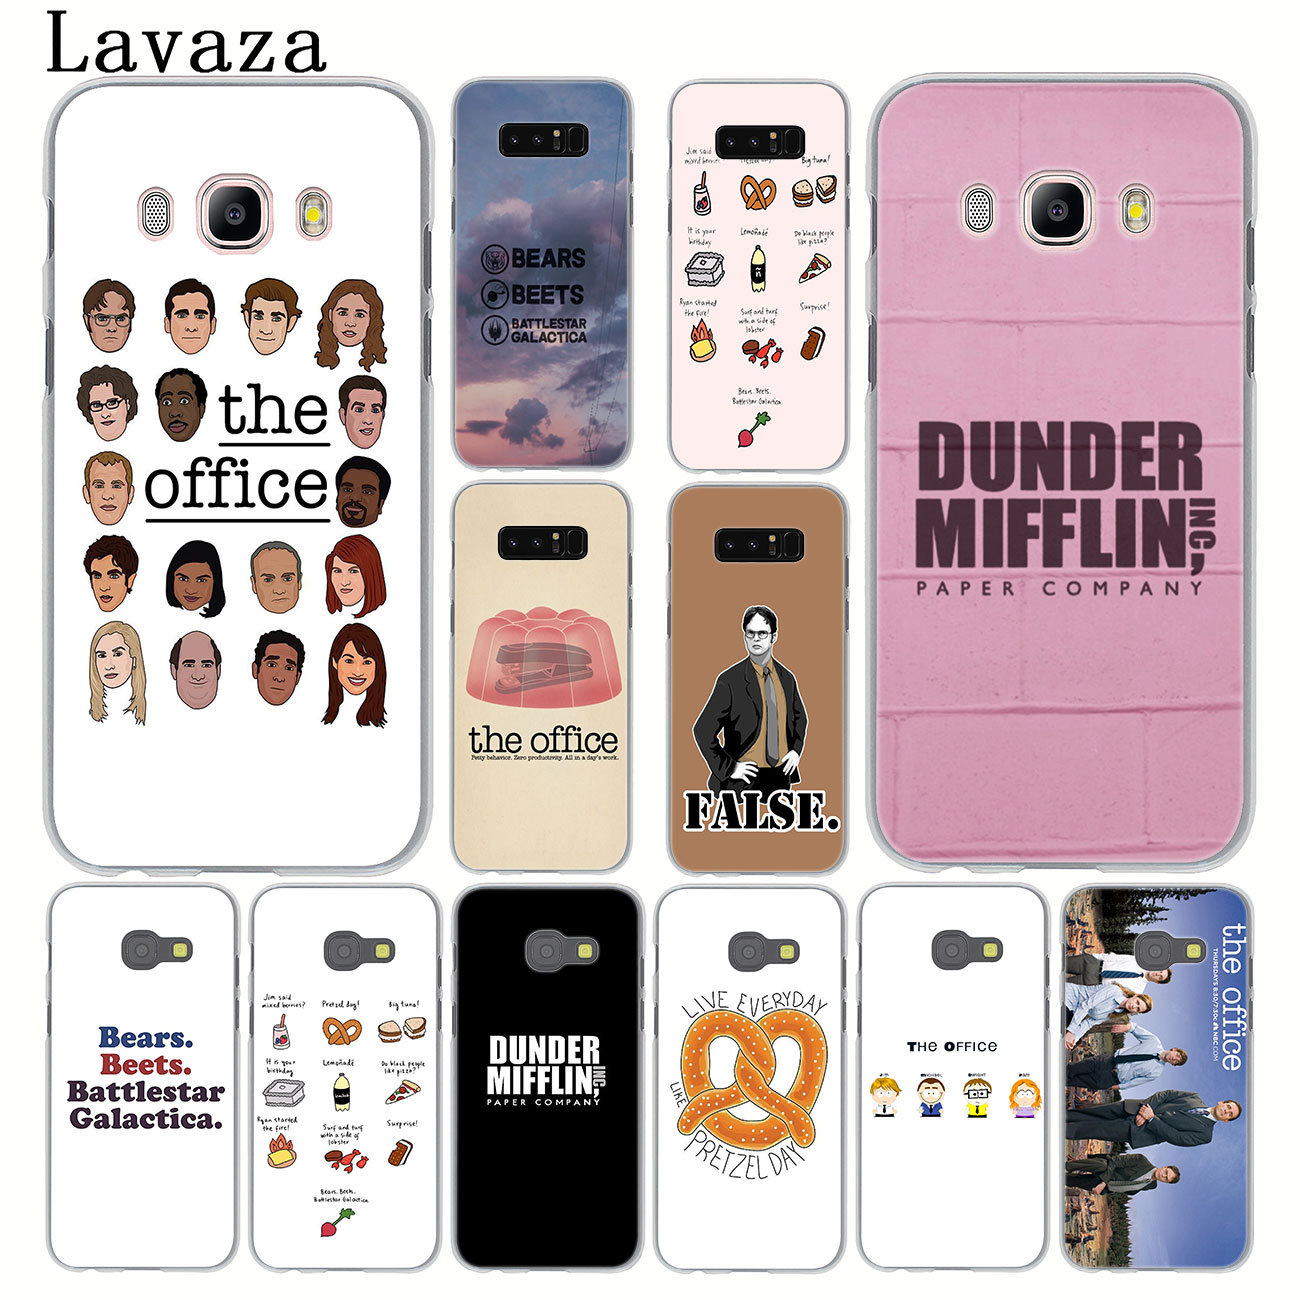 Lavaza TV the office cast meme Phone Case for Samsung Galaxy Note 10 9 8 A9 A8 A7 A6 Plus 2018 A3 A5 2017 2016 2015 A2 Cover image